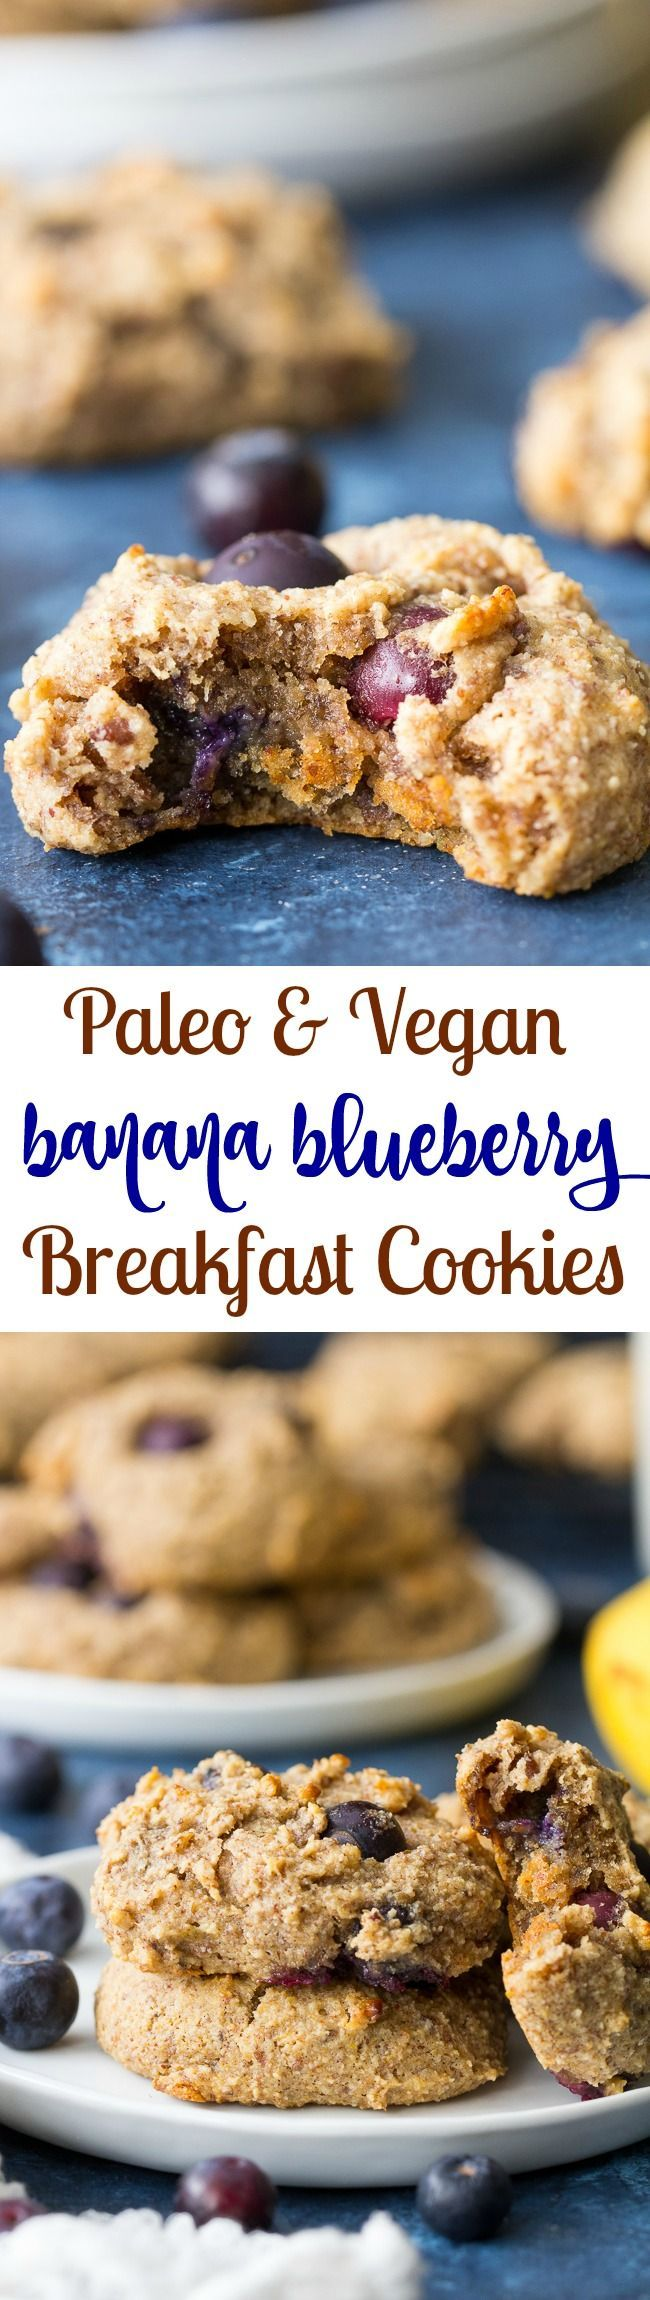 These banana blueberry breakfast cookies are perfectly chewy and irresistible with just the right amount of sweetness! Perfect to go with breakfast or as an afternoon snack. They're gluten free, grain free, vegan and Paleo friendly.